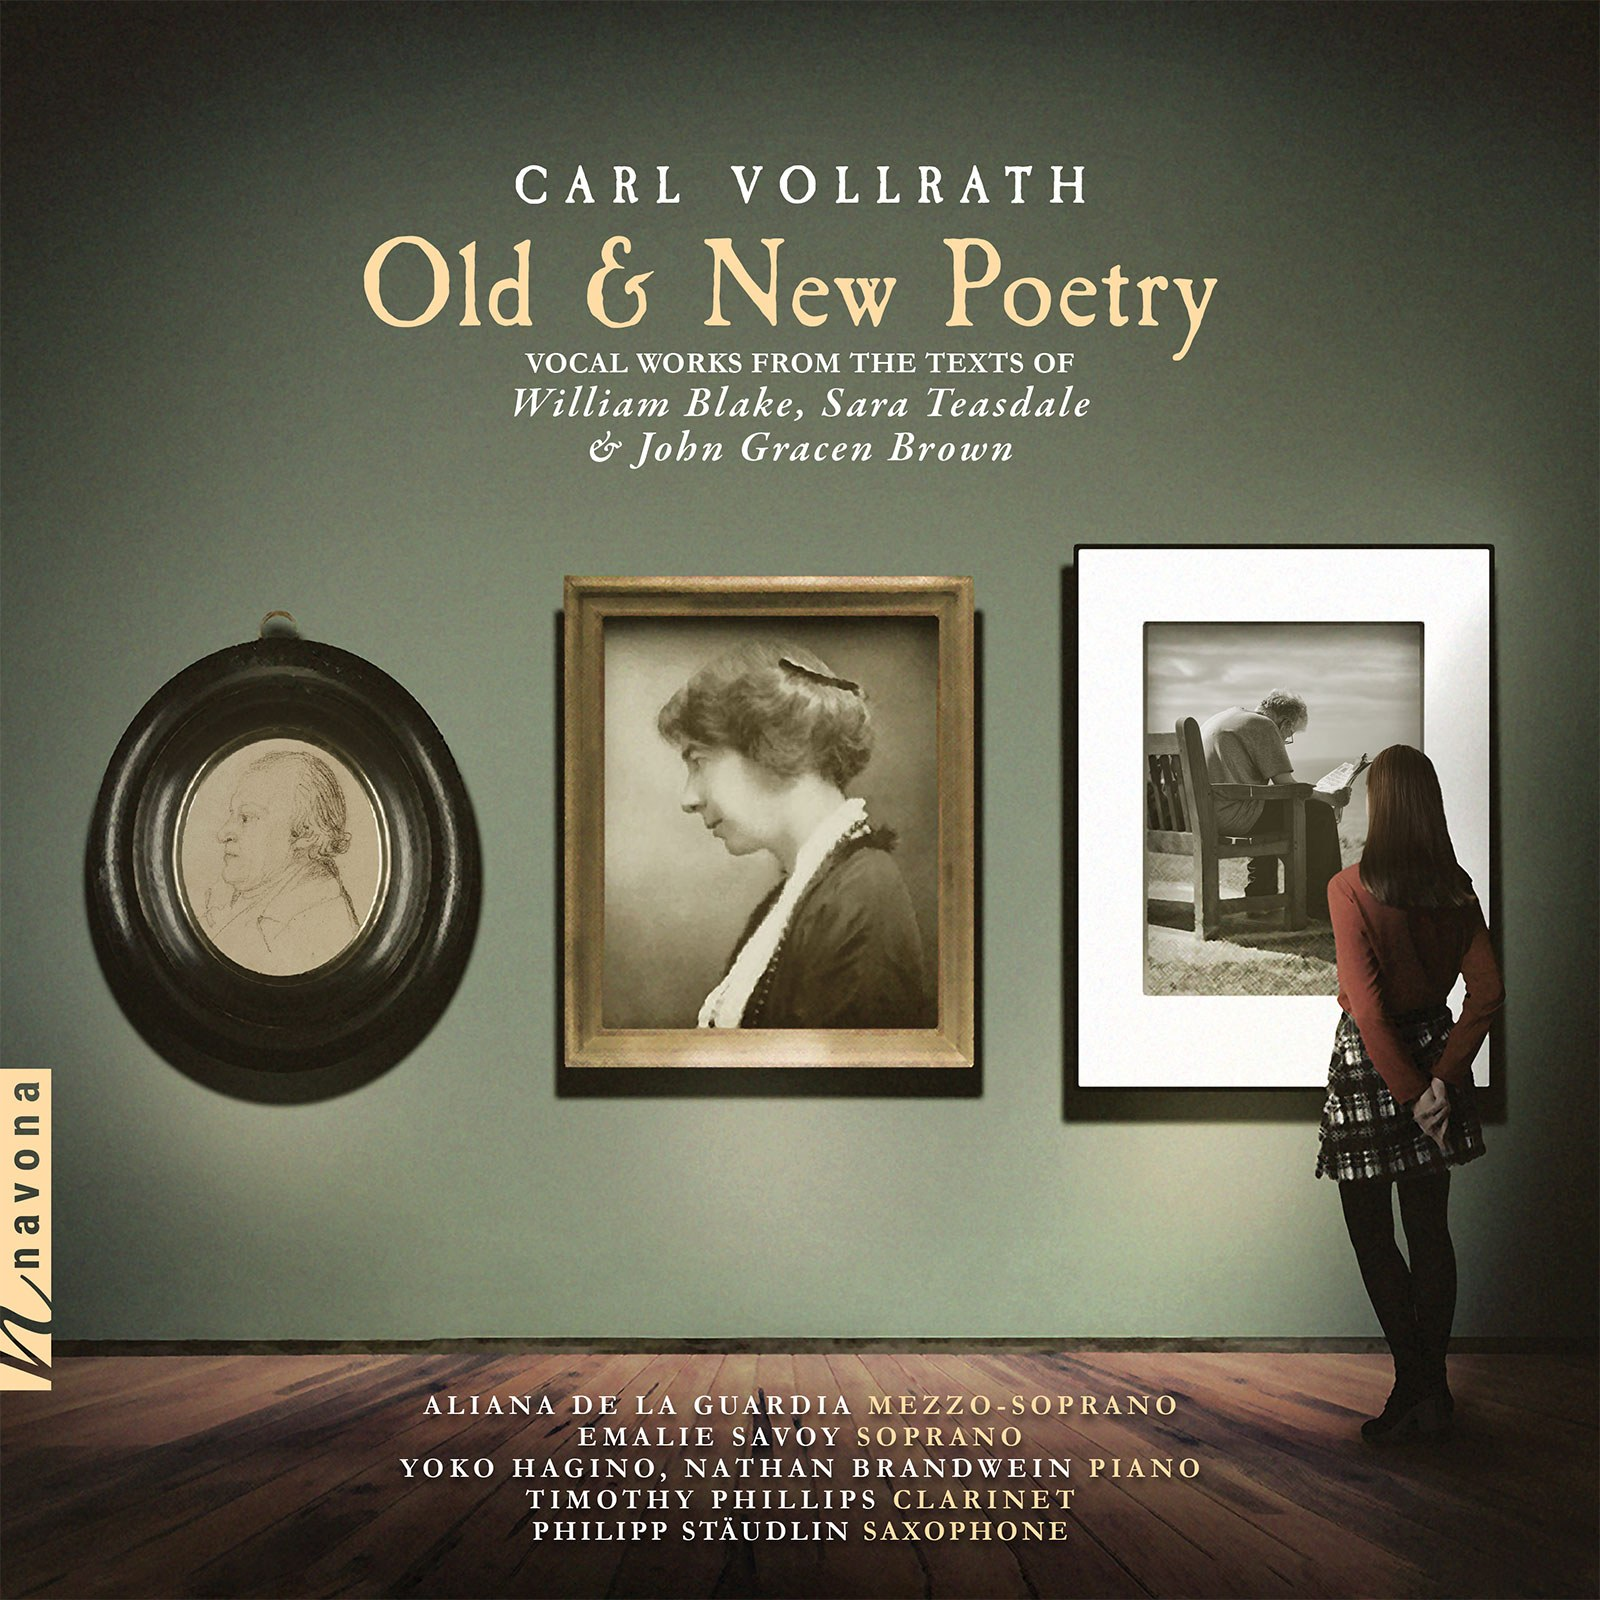 OLD & NEW POETRY - Carl Vollrath - Album Cover